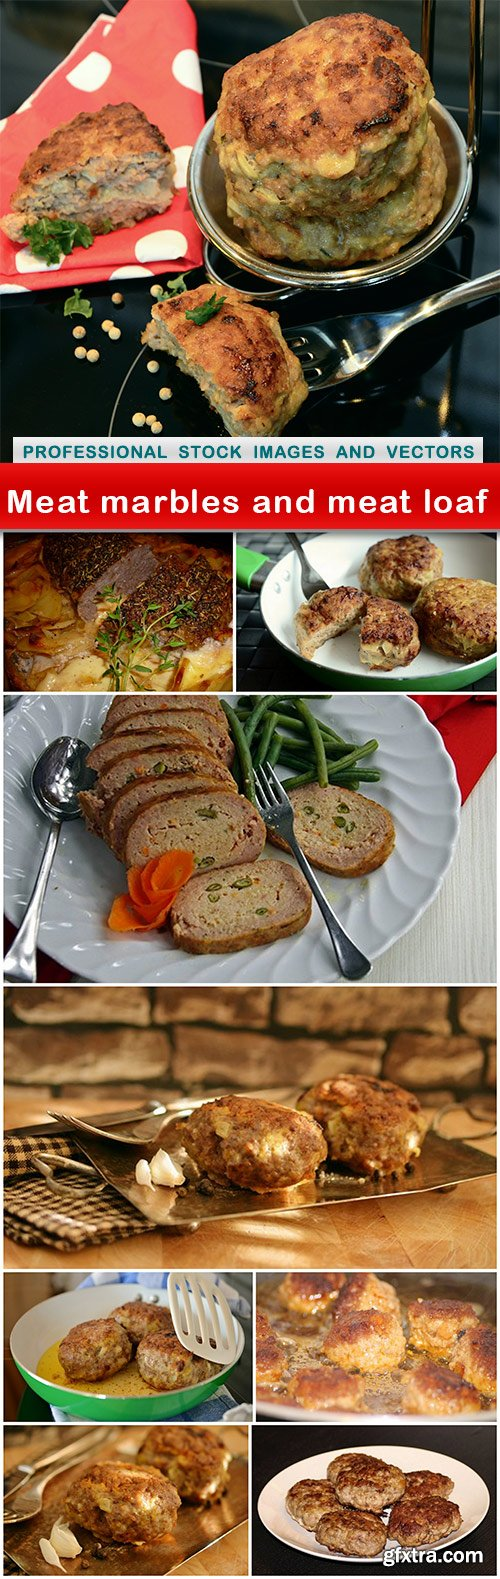 Meat marbles and meat loaf - 9 UHQ JPEG